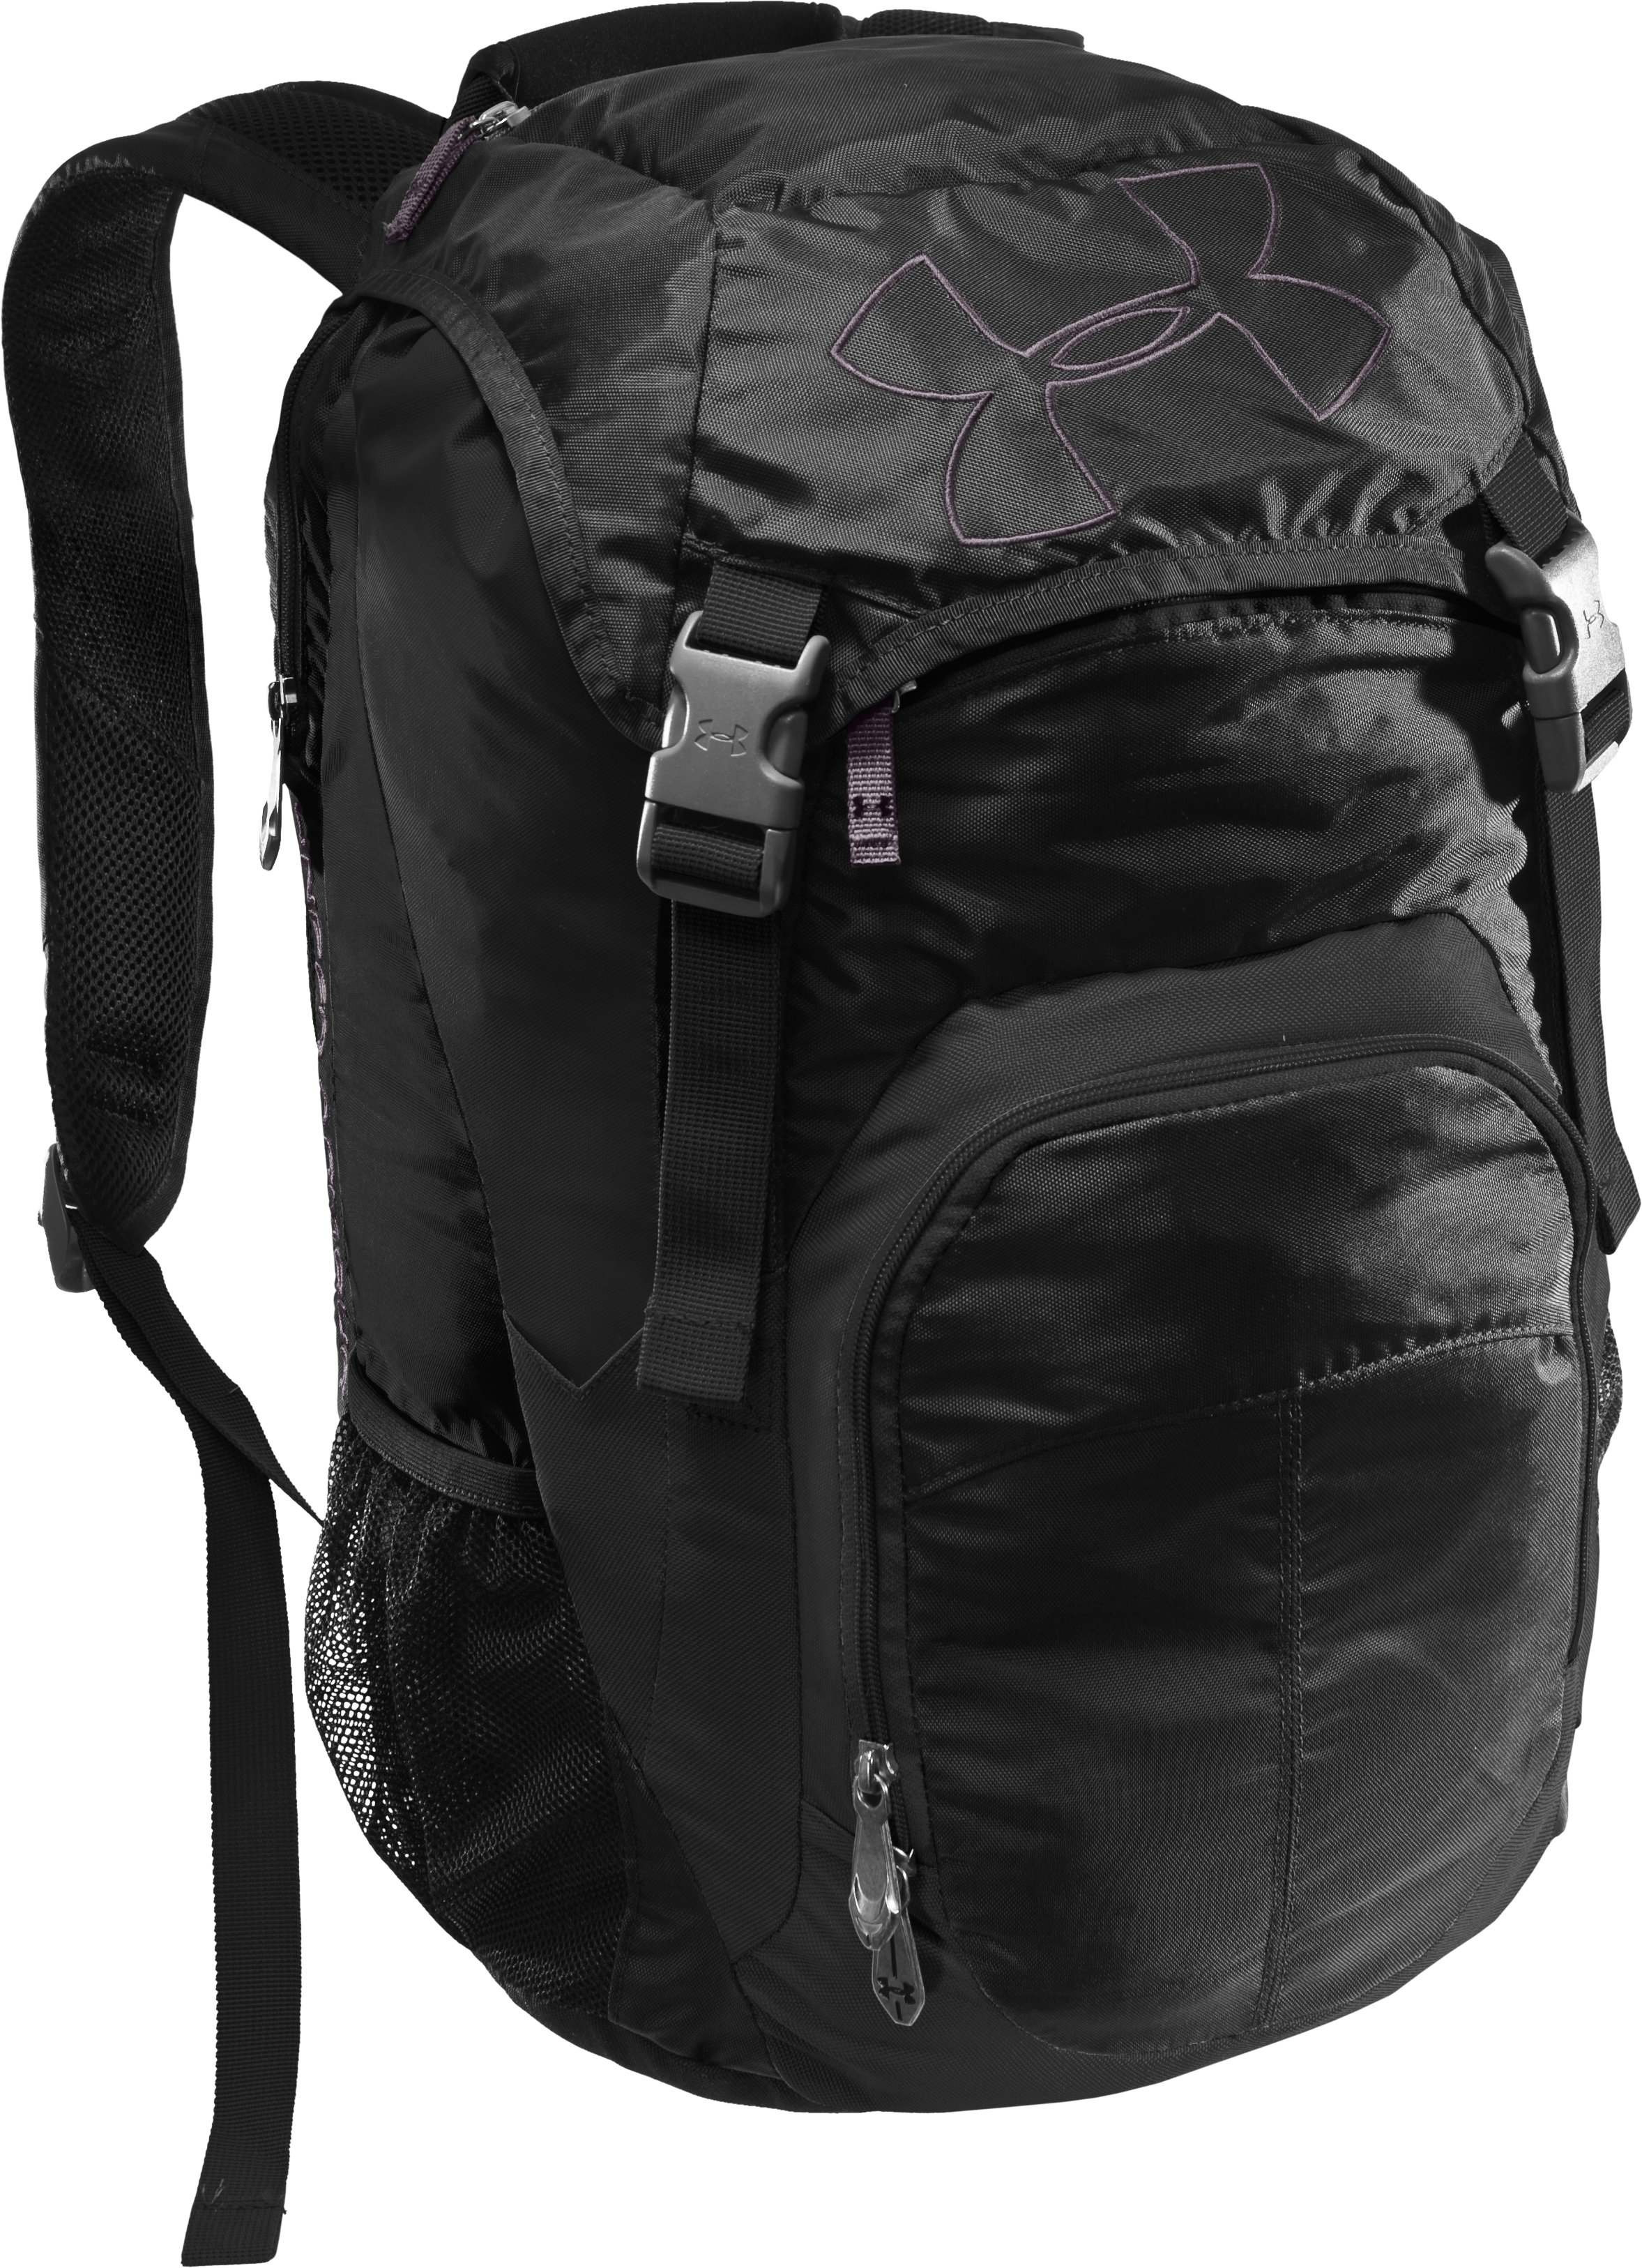 Armour Select® Backpack, Black , zoomed image